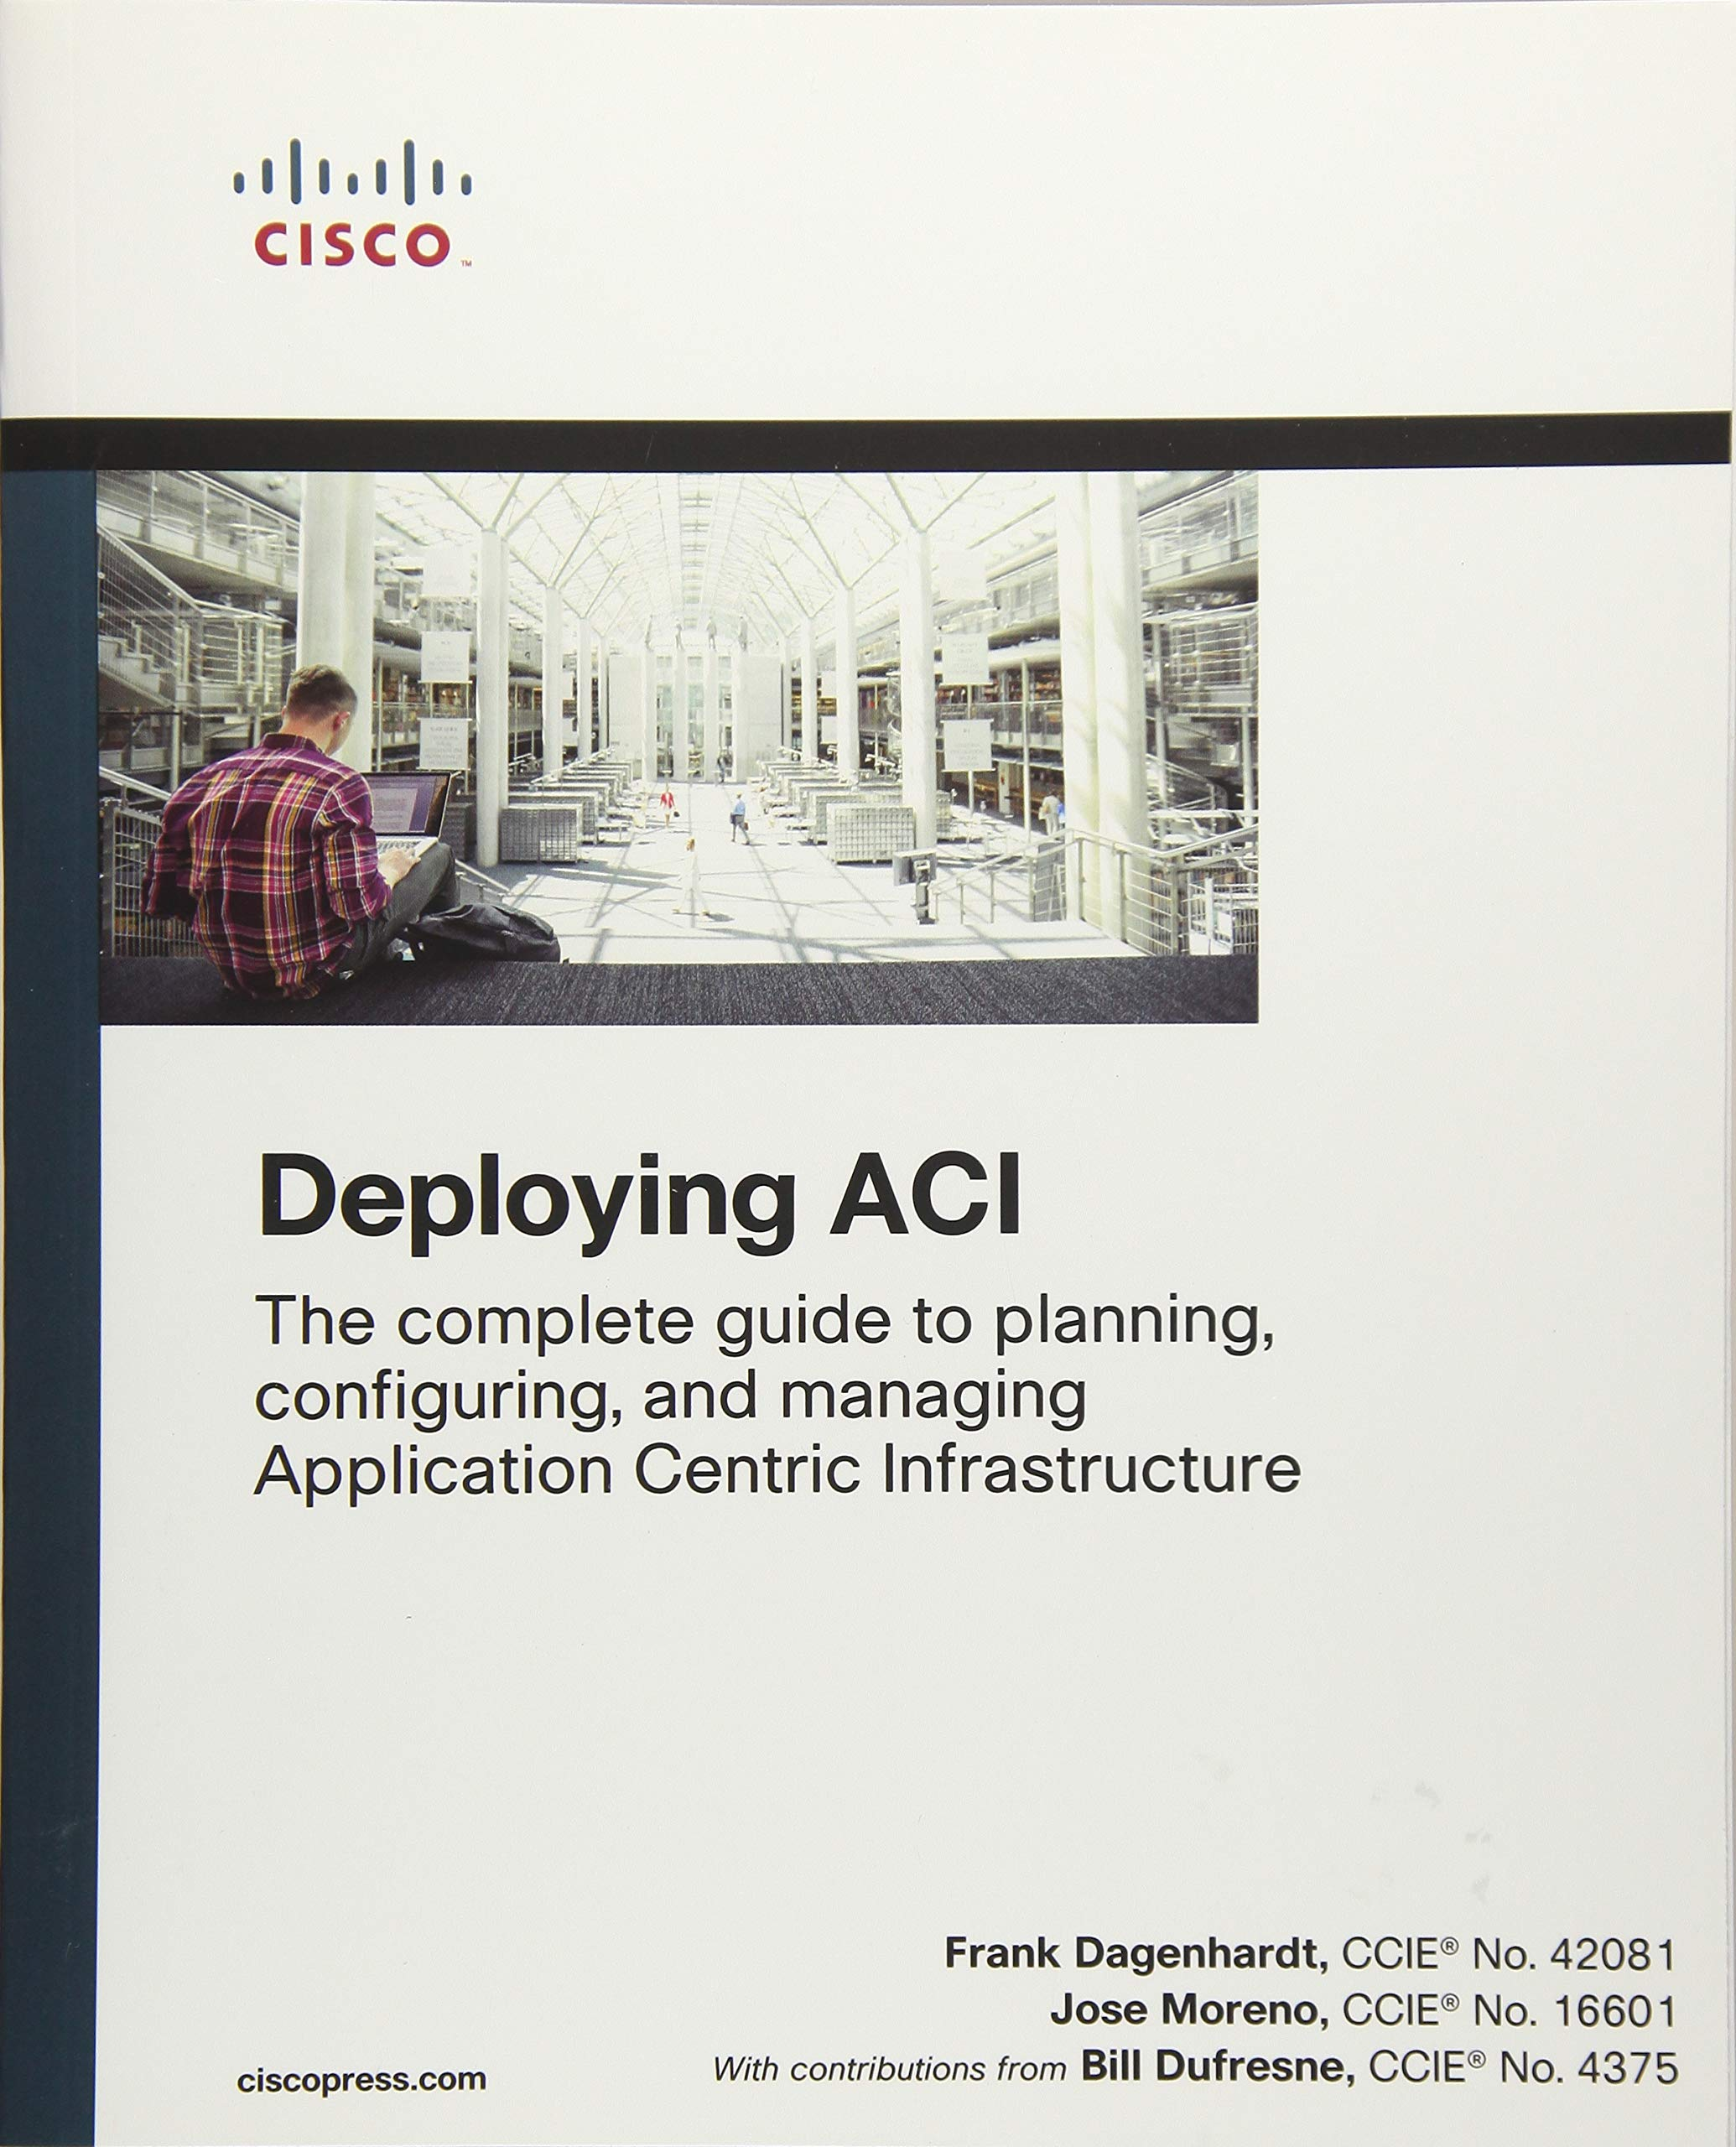 Deploying ACI: The complete guide to planning configuring and managing Application Centric Infrastructure